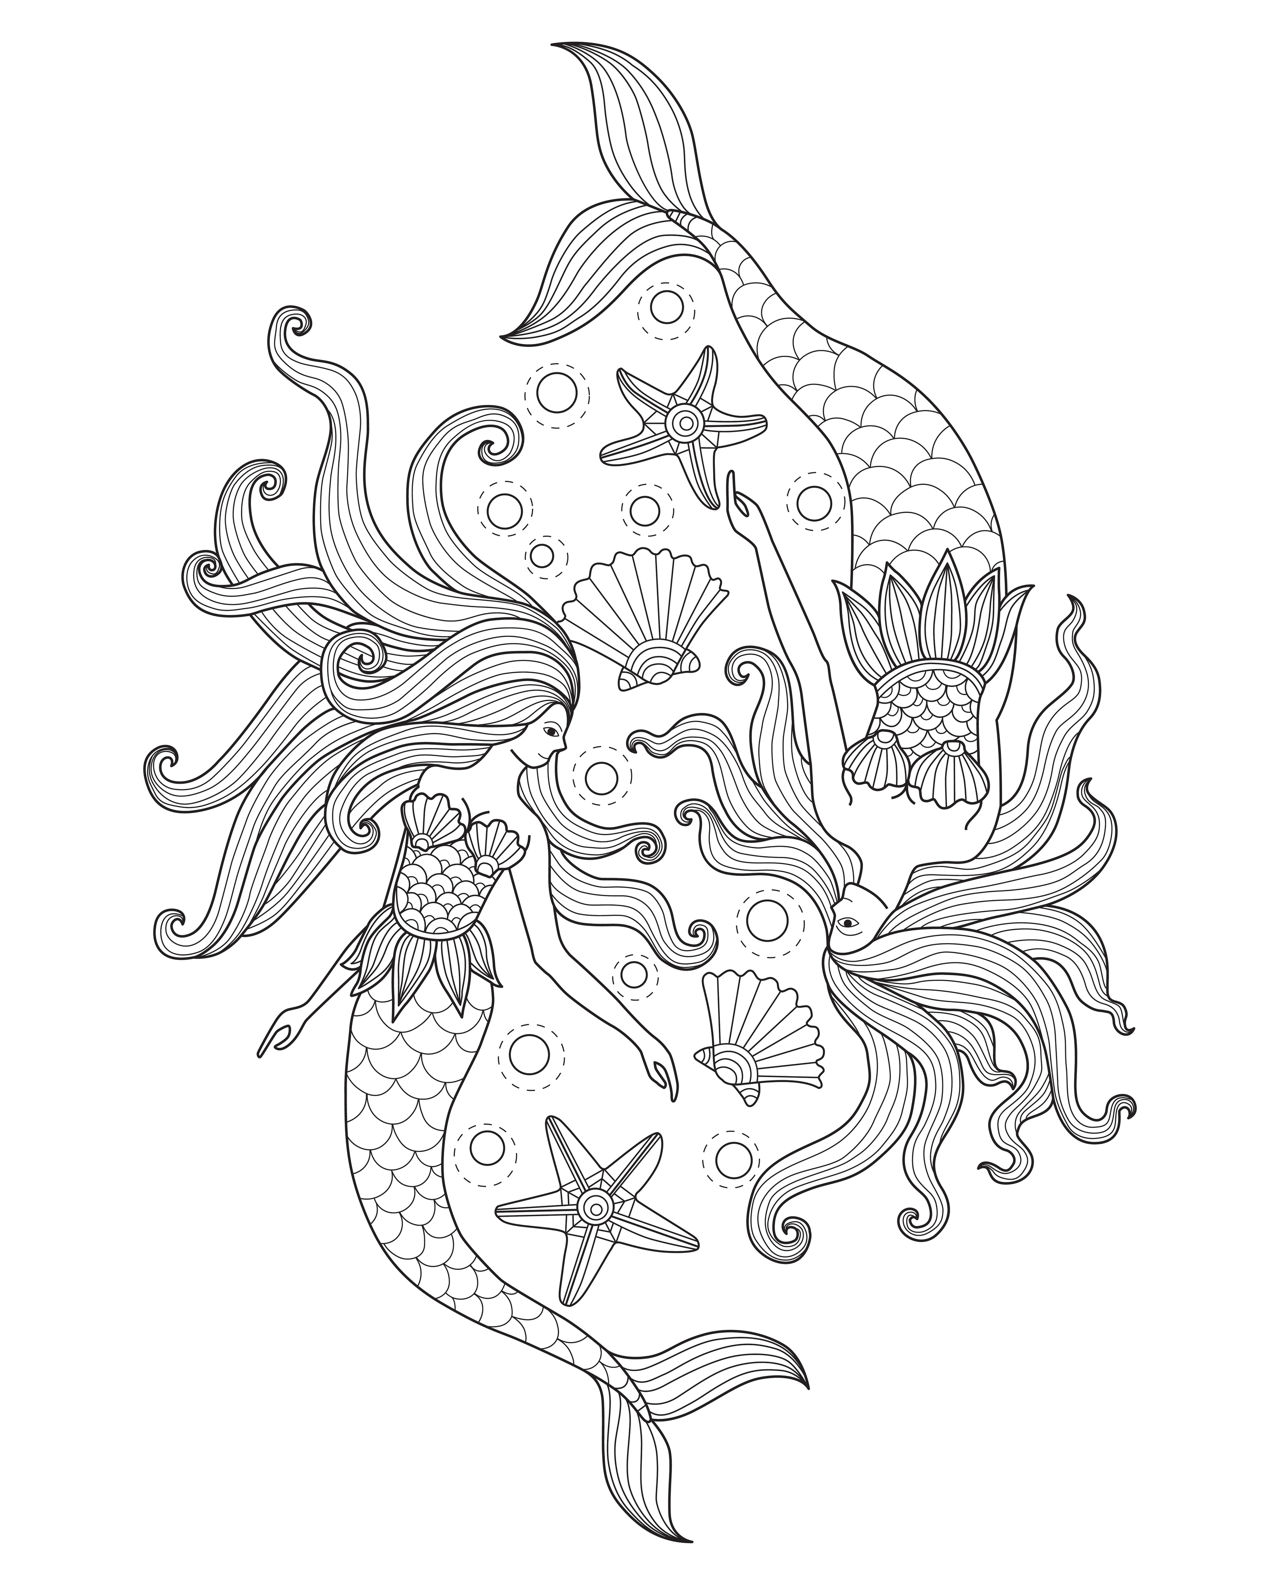 mermaid printable coloring pages the little mermaid coloring pages print and colorcom pages printable coloring mermaid